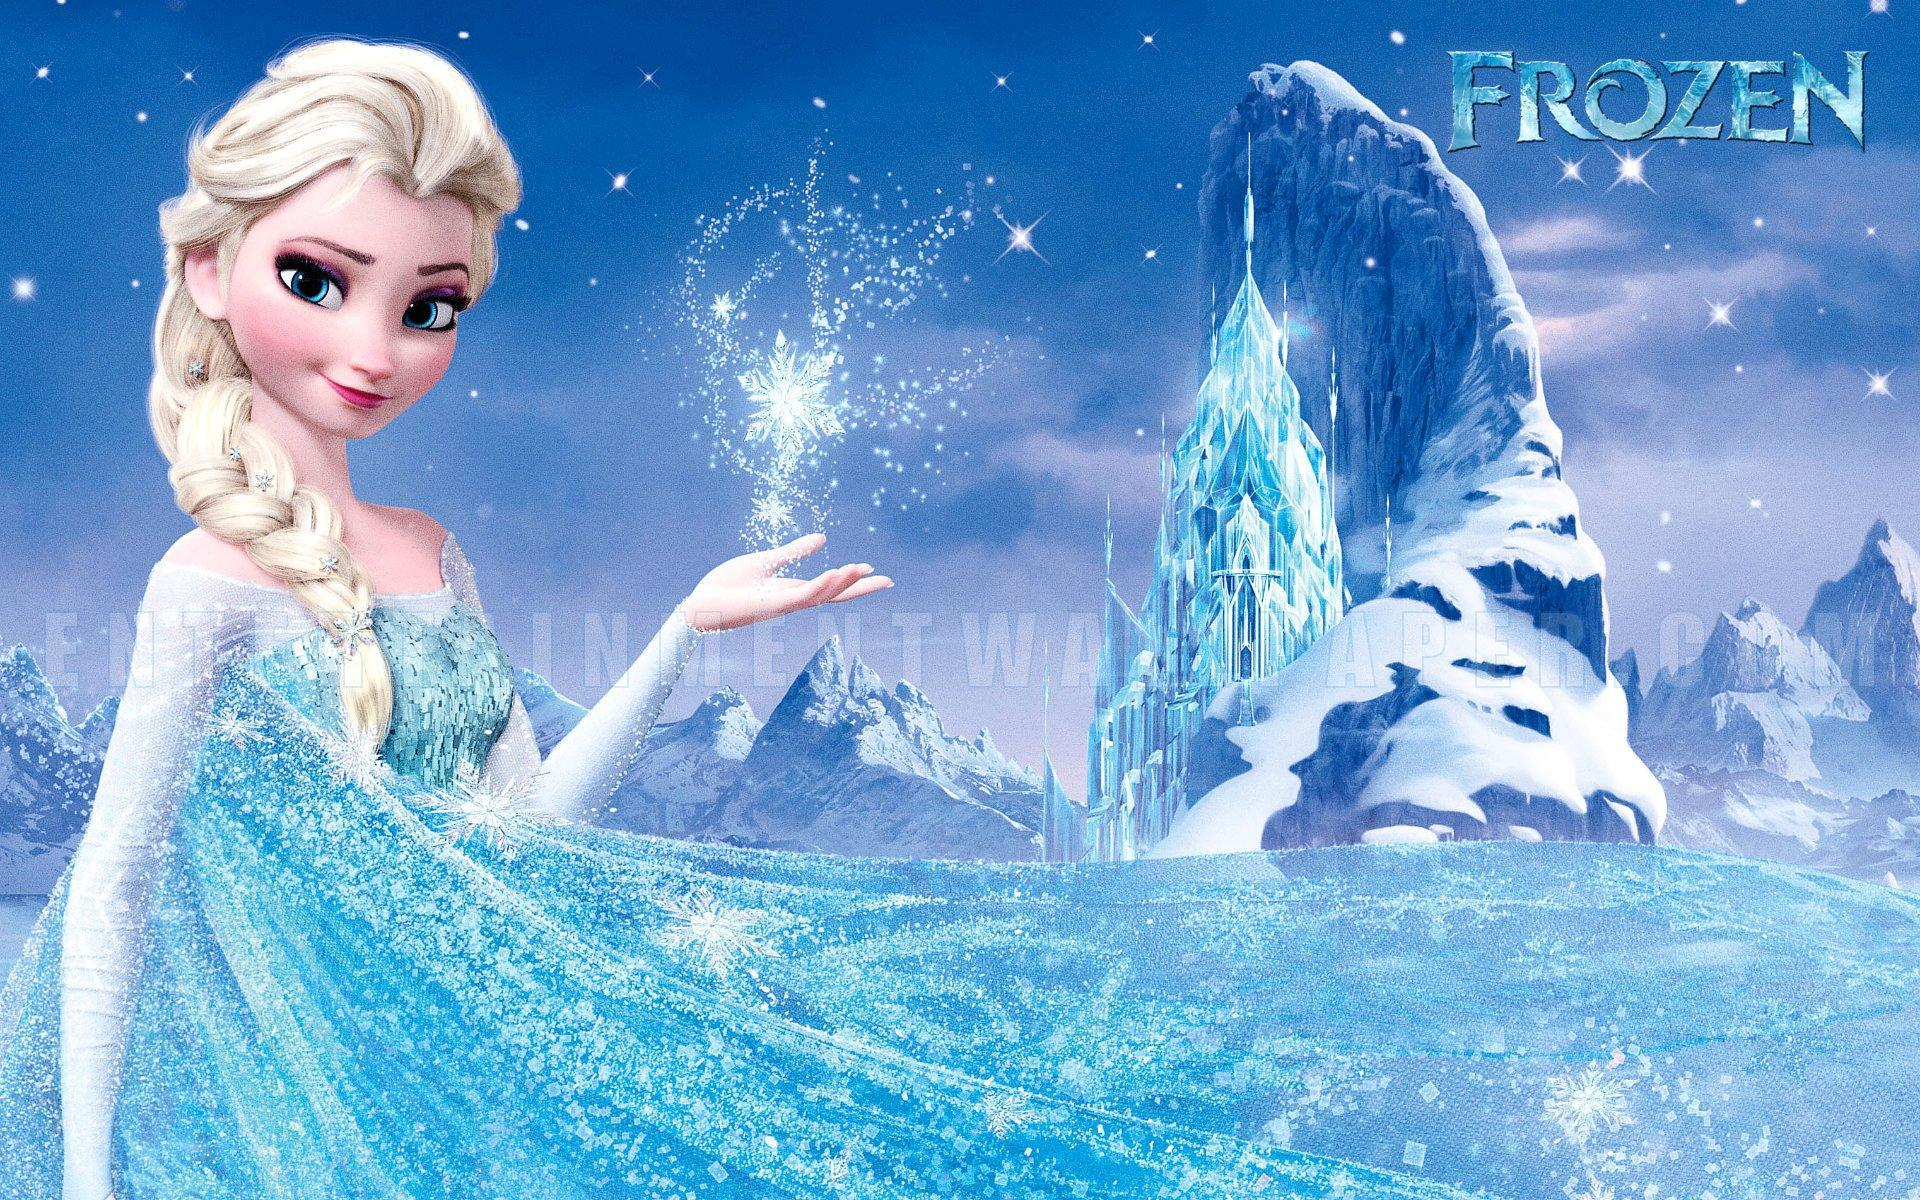 Here is a really hard Question (I know the answer), but what country does Frozen take place in?